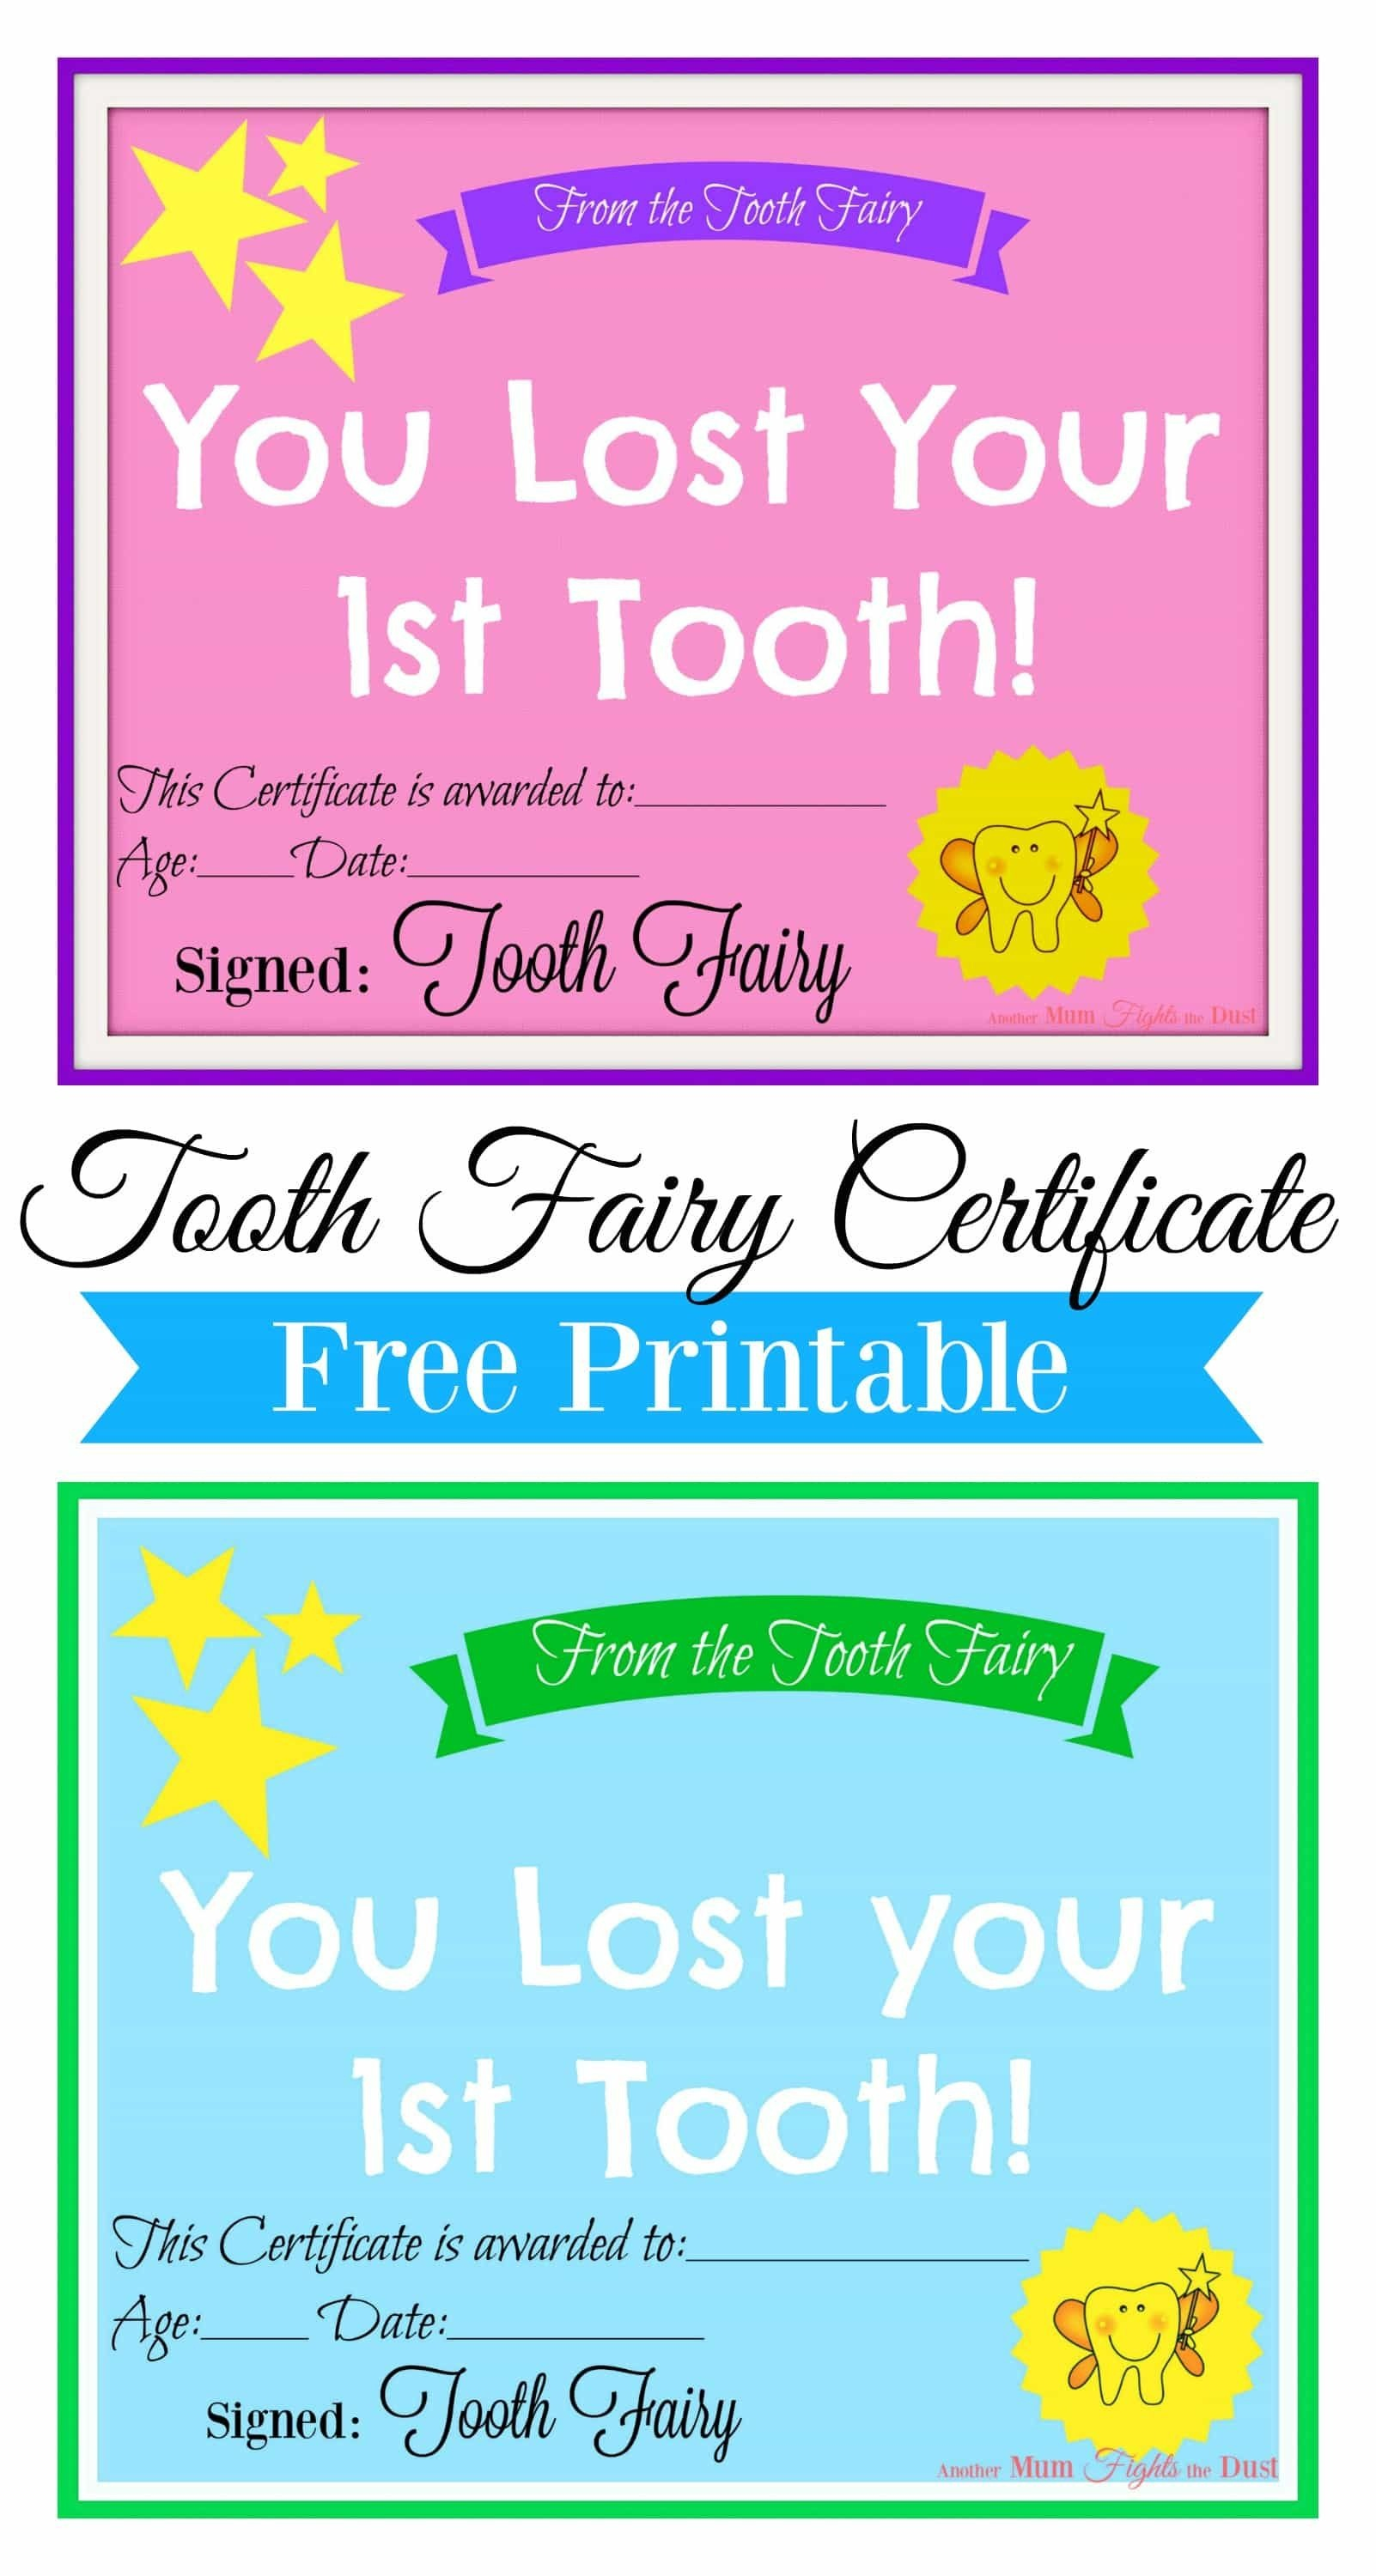 Free Printable Tooth Fairy Certificate   Tooth Fairy Ideas   Tooth - Free Printable Tooth Fairy Pictures